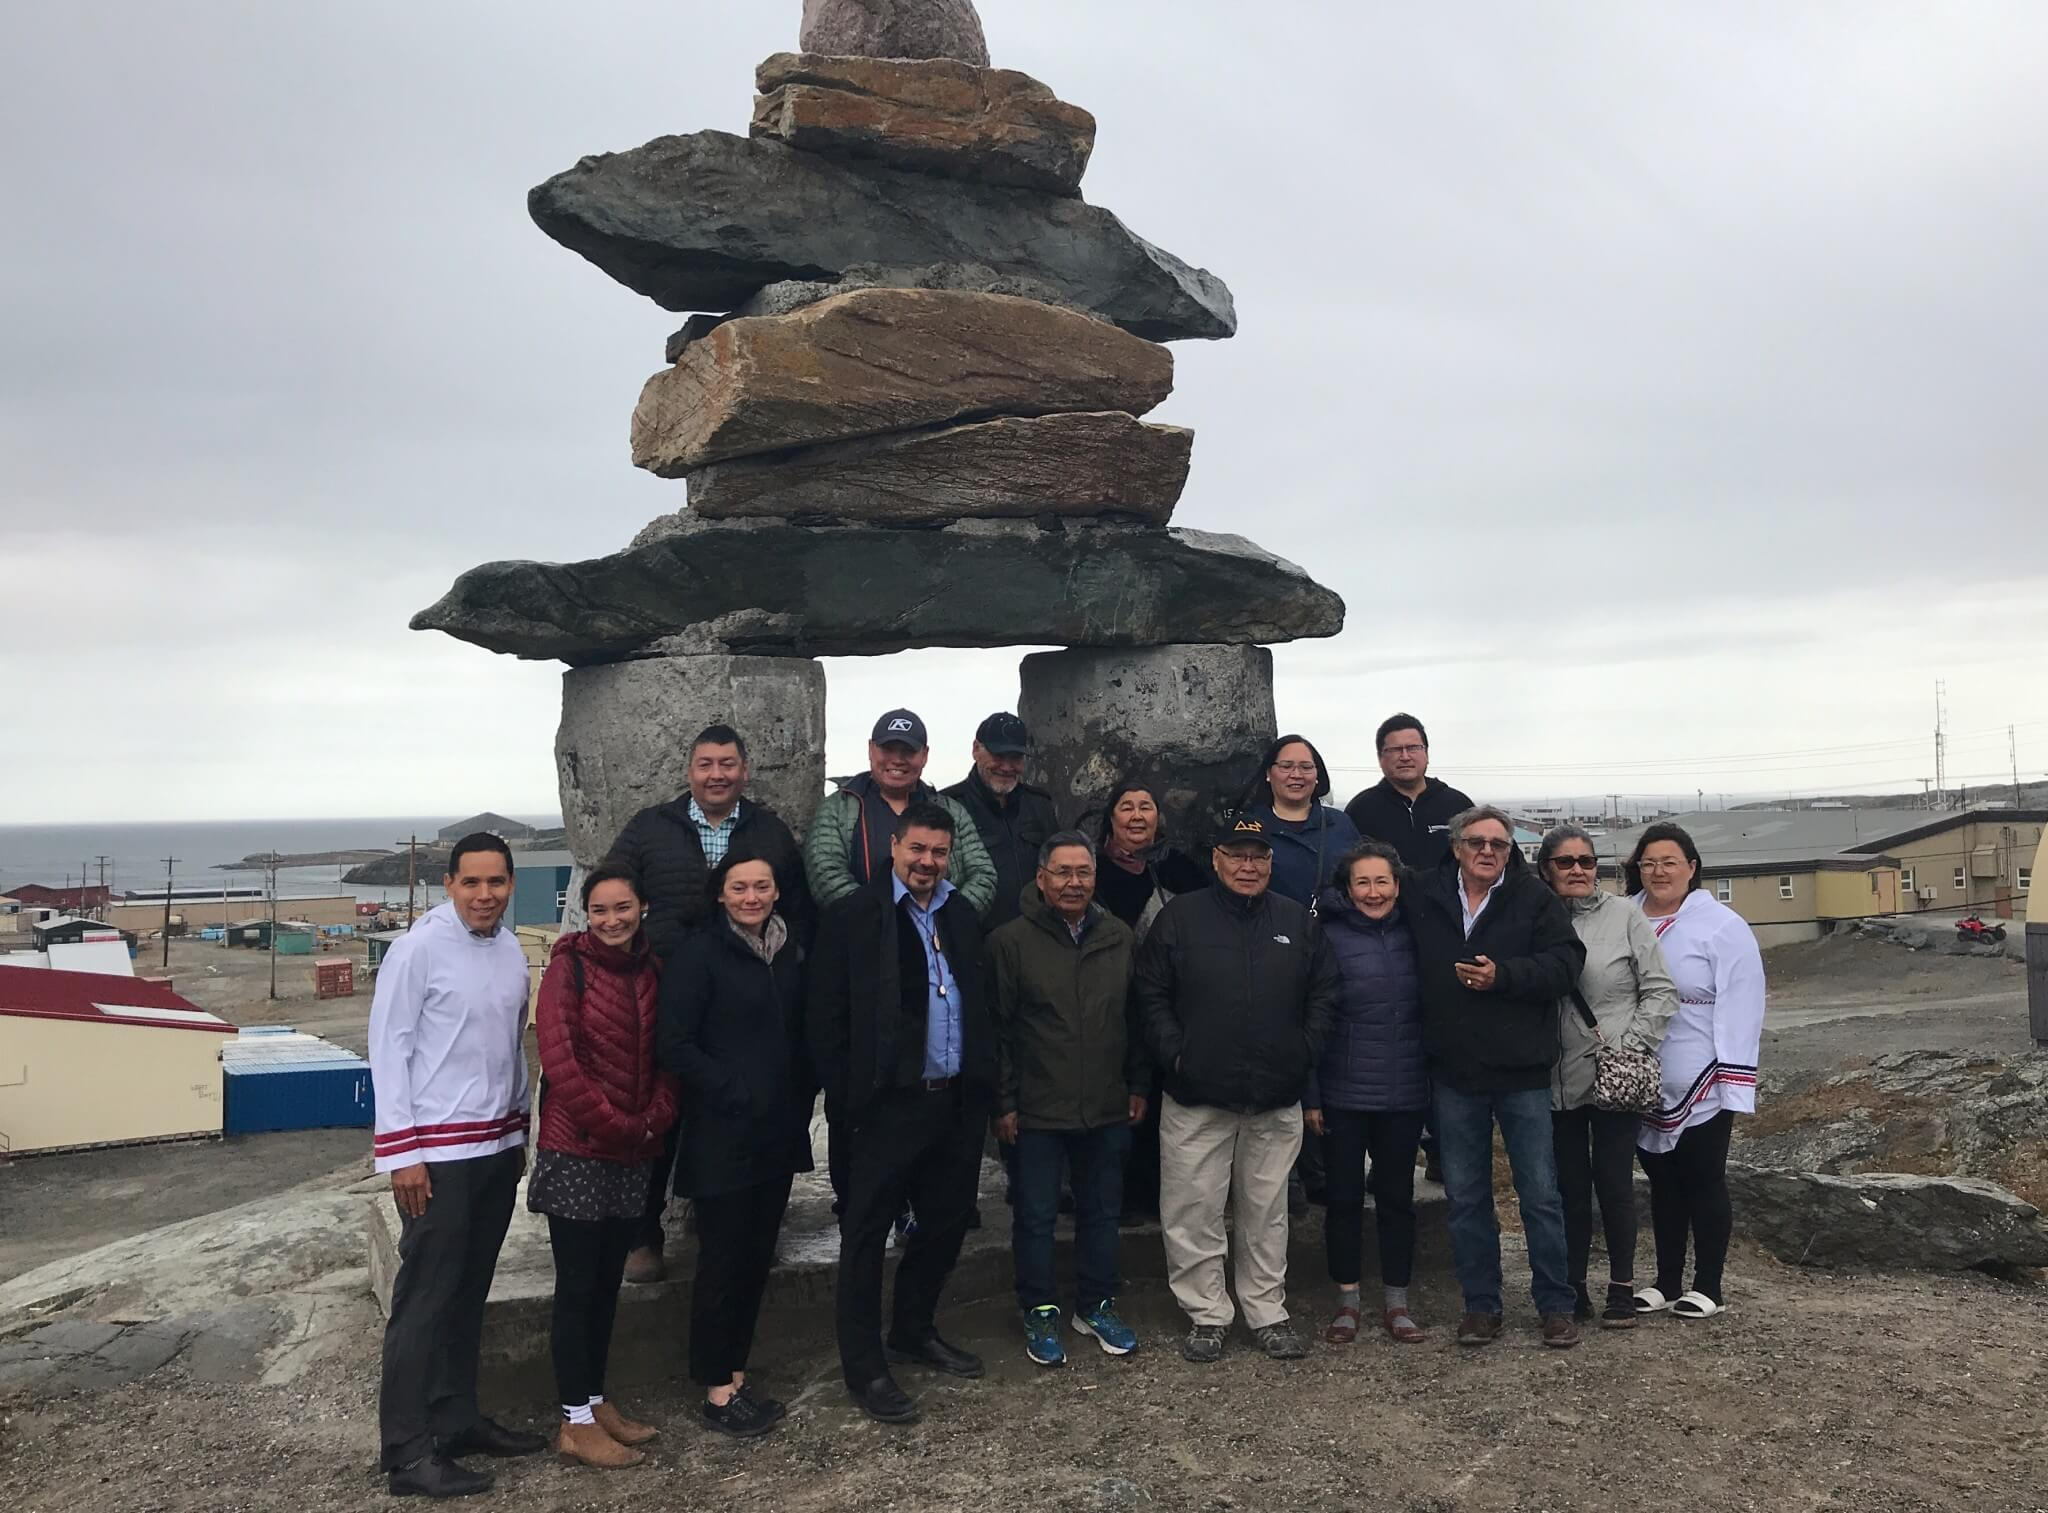 ITK Board of Directors and Annual General Meetings conclude in Rankin Inlet, NU